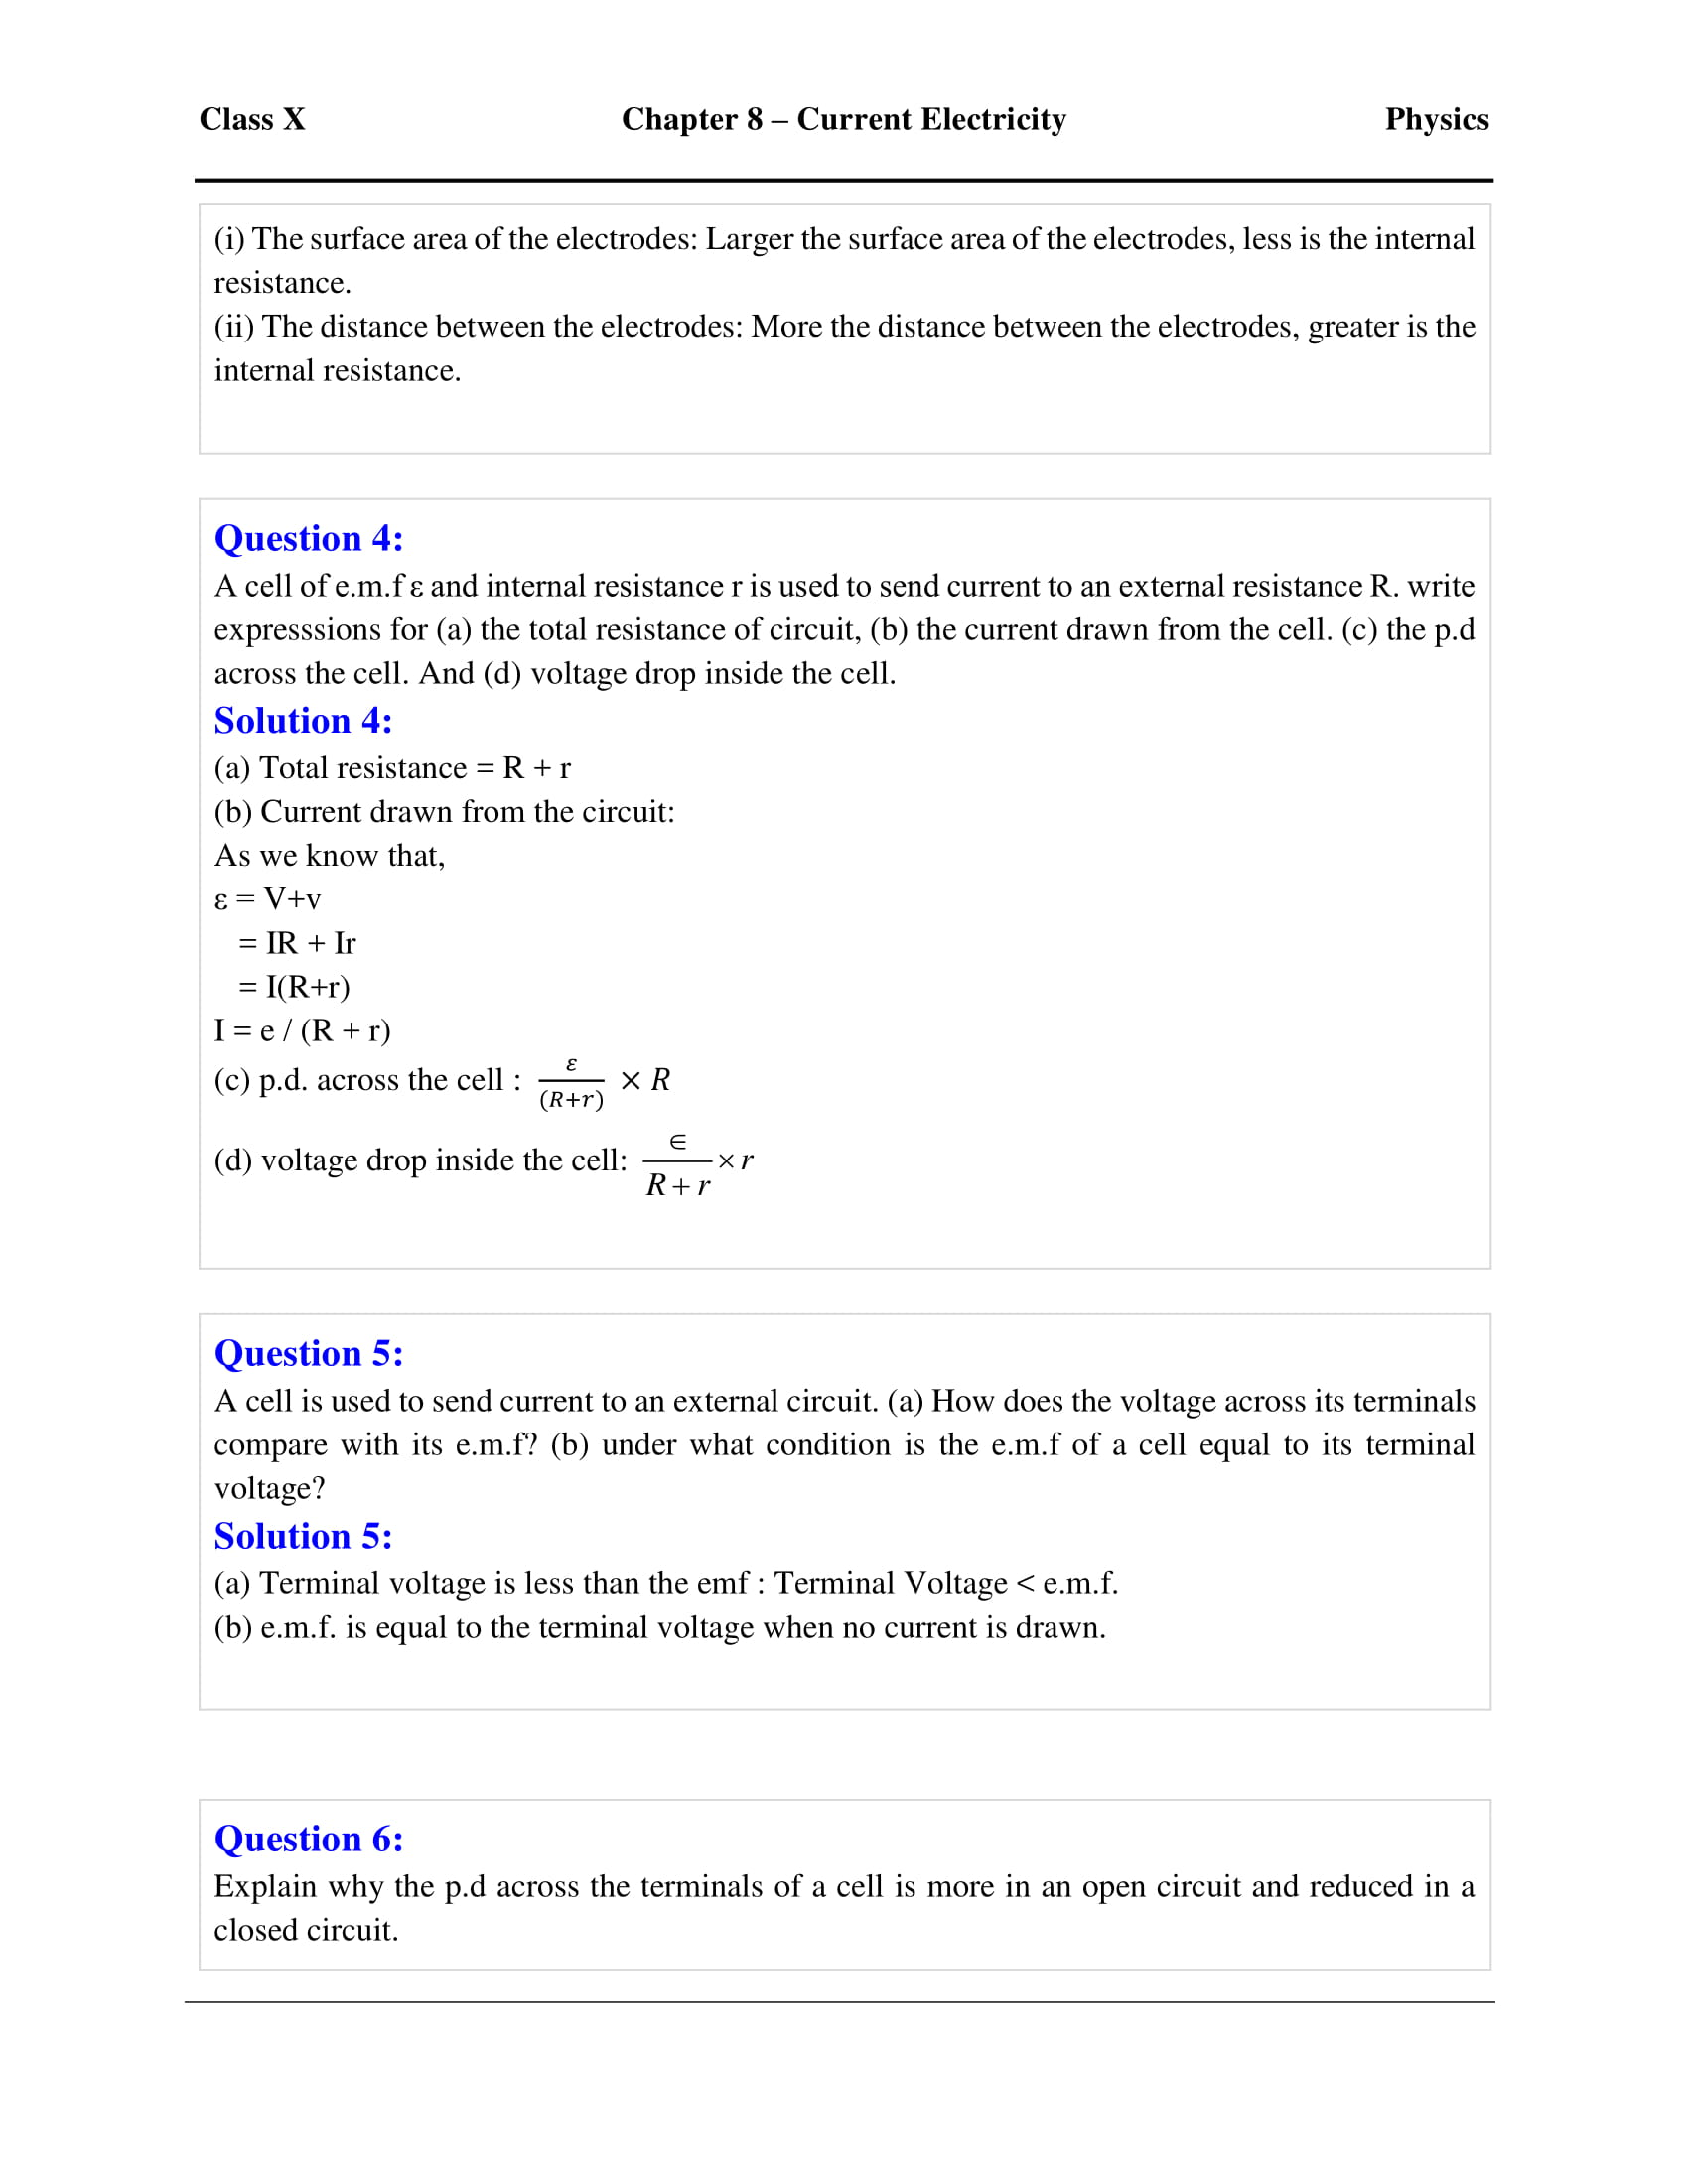 icse-selina-physics-solutions-class-10-chapter-8-current-electricity-18